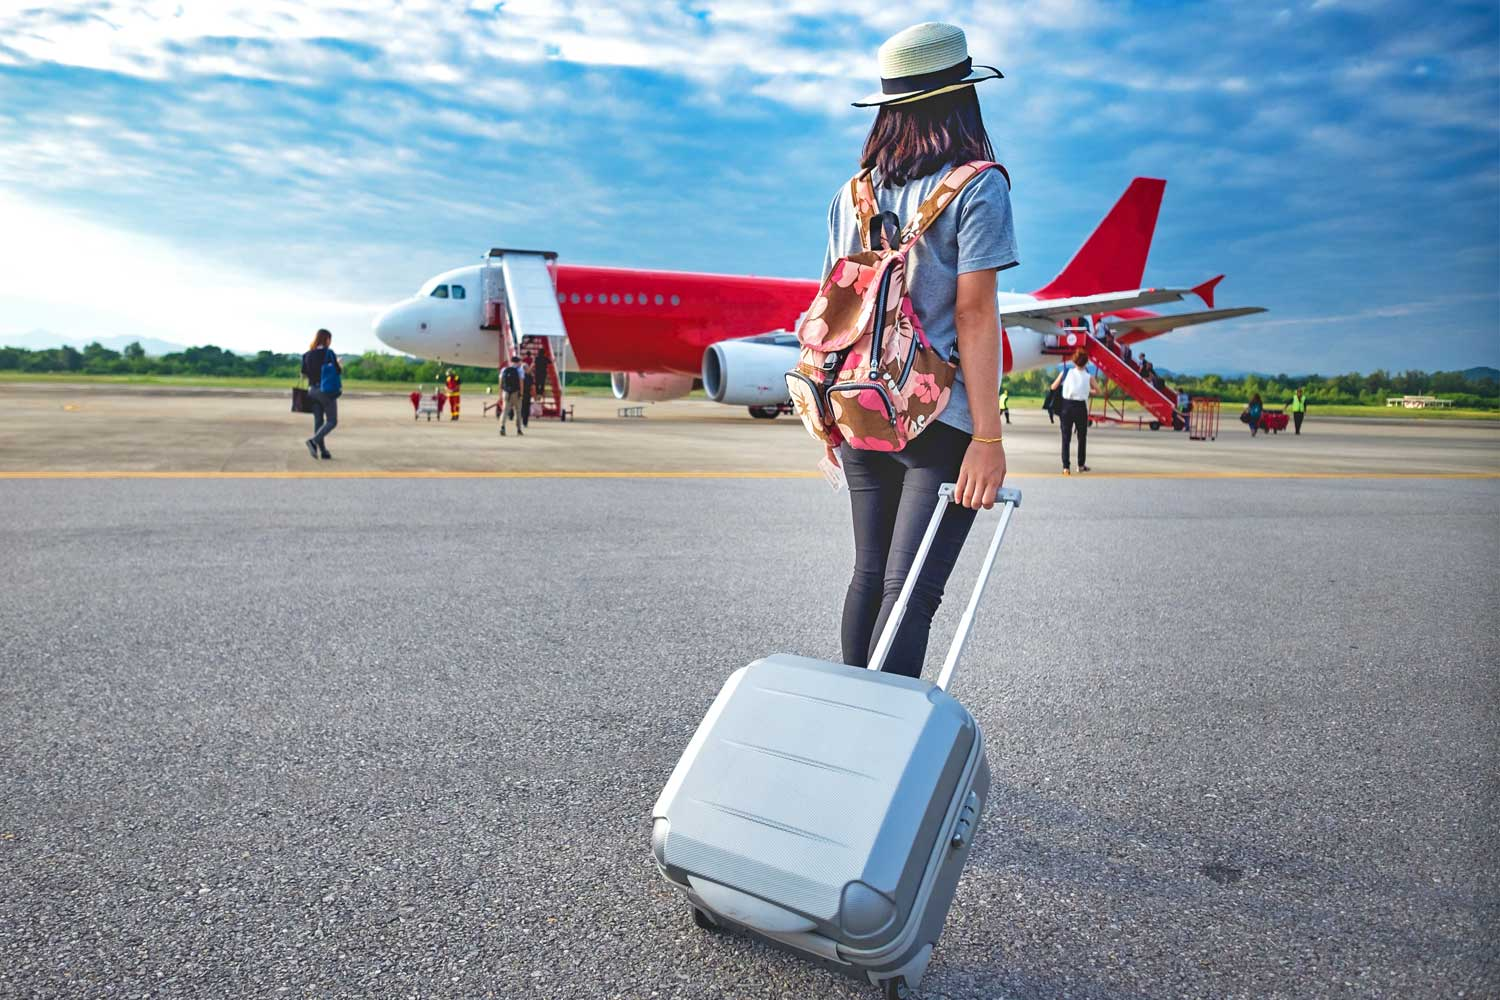 carry on essentials for comfortable flying